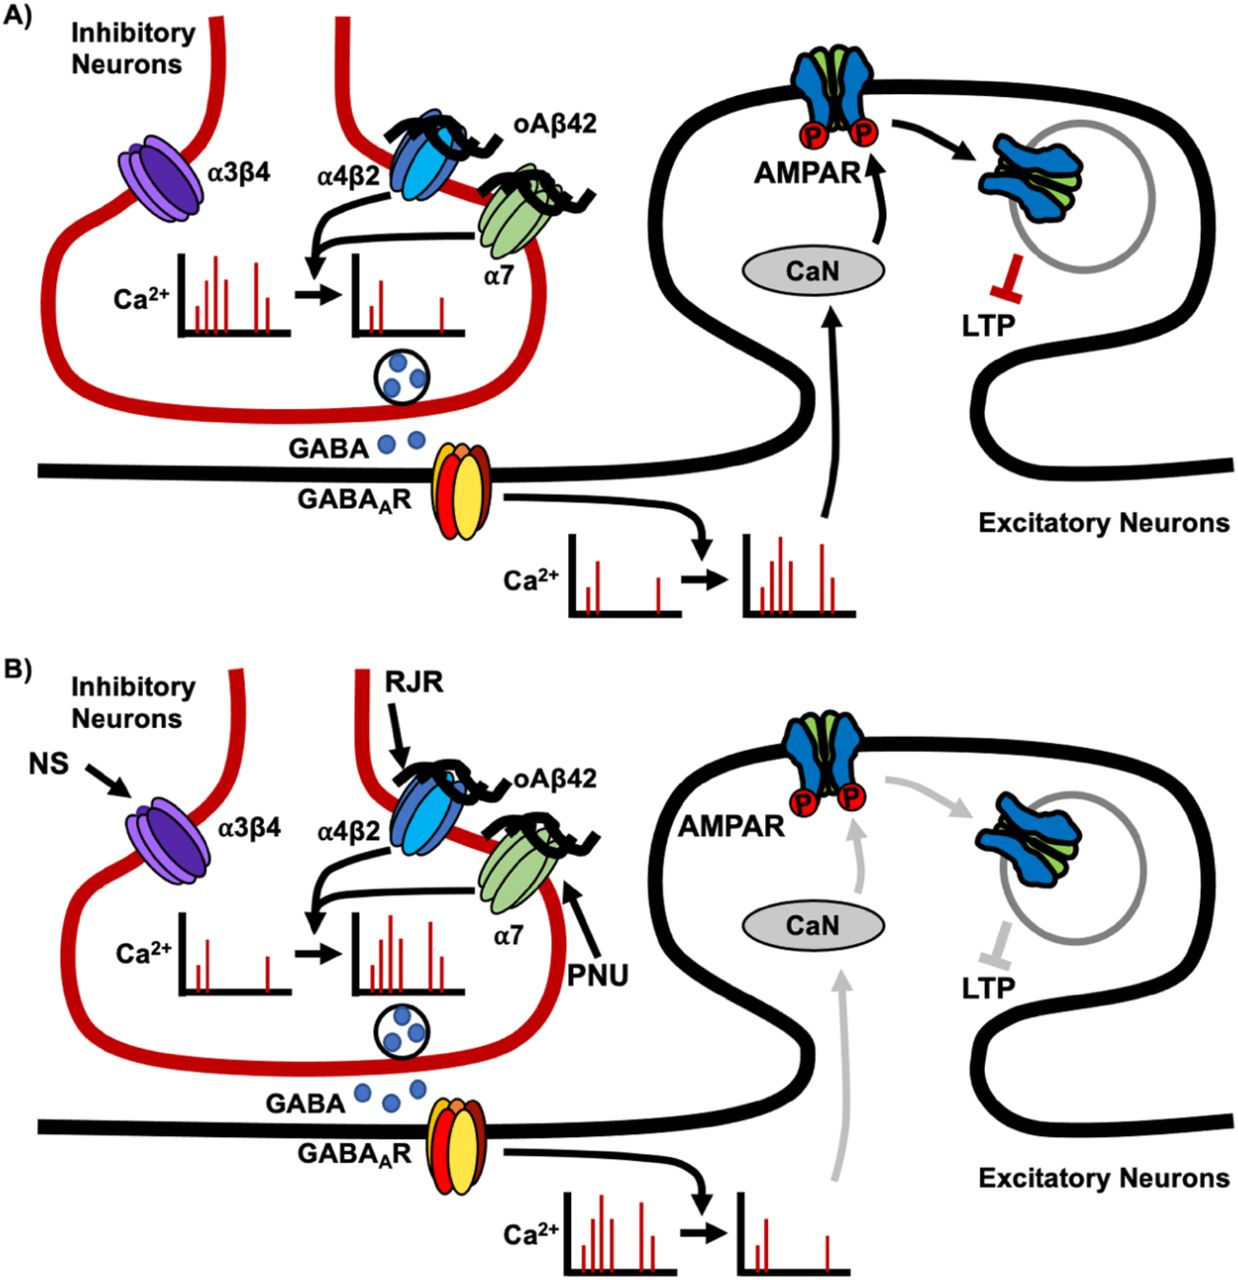 Schematic model. A ) Impact of Aβ oligomers. In the hippocampus, nAChRs are prominently expressed on inhibitory interneurons, thus, selective binding of soluble Aβ42 oligomers (oAβ42) to α7- and α4β2-nAChRs but not α3β4-nAChRs, reduces neuronal activity in inhibitory cells, leading to a decrease in the release of GABA onto hippocampal excitatory neurons. Consequently, excitatory cells have increased frequency of Ca 2+ transients, resulting in elevated calcineurin (CaN) activity. CaN dephosphorylates the AMPAR subunit, GluA1, promoting AMPAR endocytosis and resulting in an overall decrease of AMPAR surface expression. This ultimately contributes to disruptions of LTP. B) Reversal of Aβ-induced synaptic and neuronal dysfunction by co-stimulation with α7- and α4β2-nAChRs agonists. As Aβ42 inhibits both α7- and α4β2-nAChRs but not α3β4-nAChRs, co-stimulation of α7- and α4β2-nAChRs by selective agonists, PNU-282987 (PNU) and RJR-2403 Oxalate (RJR), can restore normal activity of both hippocampal inhibitory and excitatory cells, reversing Aβ-induced synaptic dysfunction. This restoration of normal Ca 2+ activity prompts a decrease in calcineurin activity, leading to a decrease in AMPAR dephosphorylation and AMPAR endocytosis, ultimately restoring normal LTP. However, an agonist for α3β4-nAChRs, NS-3861 (NS), does not appear to have neuroprotective effects. Moreover, non-specific stimulation of nAChRs by using three agonists together or carbachol is unable to reverse the Aβ effects on neuronal activity and synaptic function, emphasizing the importance of selective co-stimulation of nAChRs as potential therapeutic approaches.